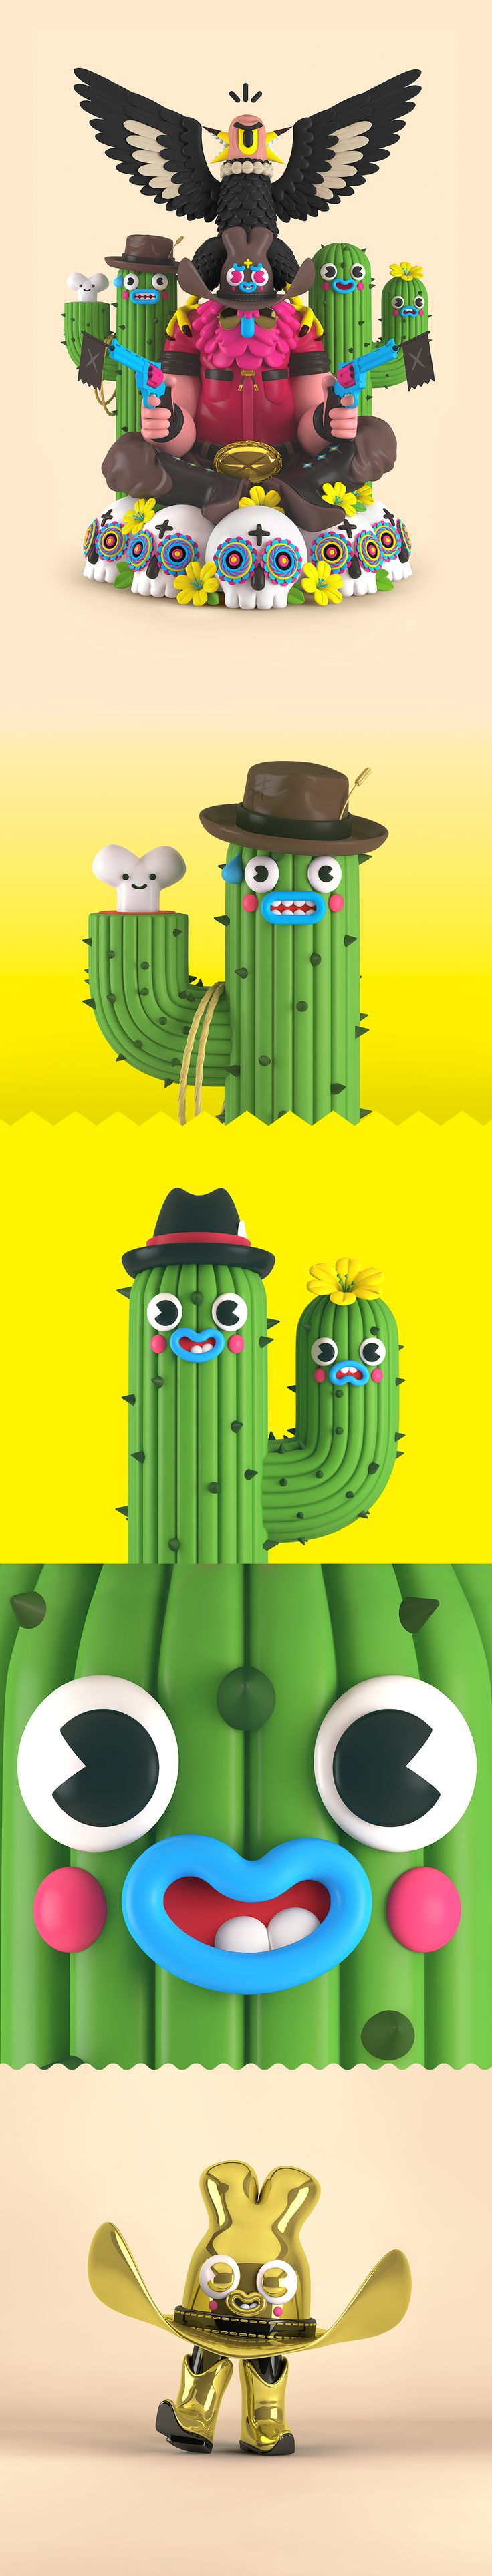 The Colorful, Fun and Hilarious 3D Illustrations of 'El Grand Chamaco'